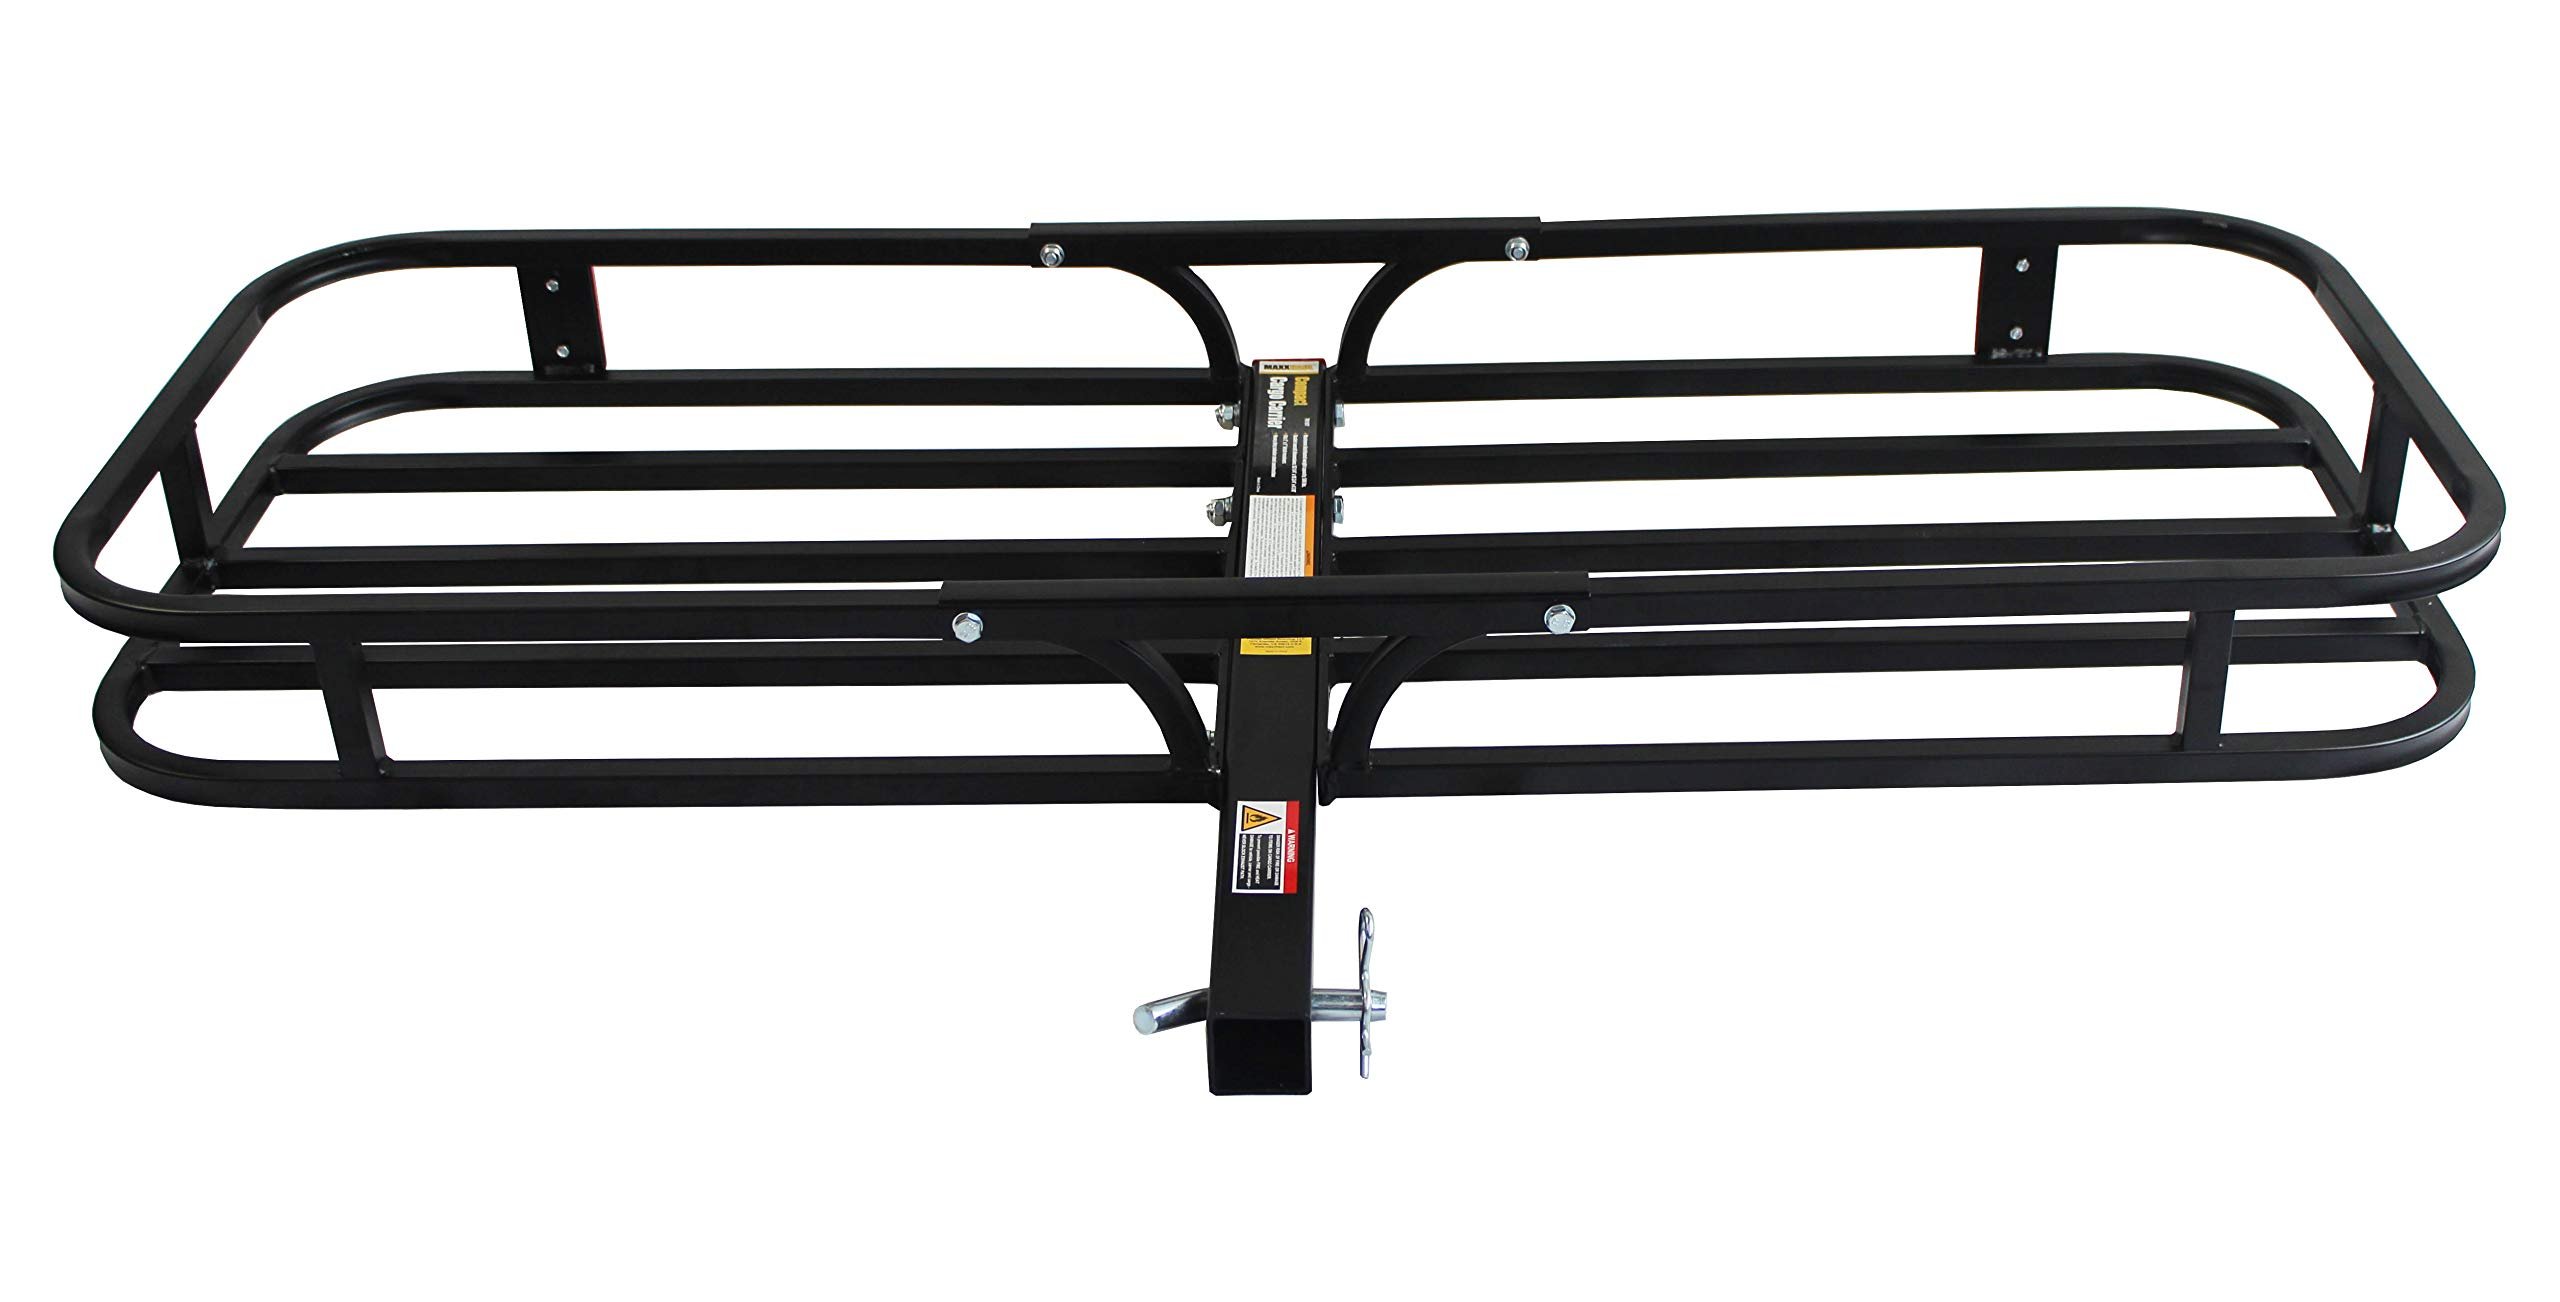 MaxxHaul 70107 Hitch Mount Compact Cargo Carrier - 53'' x 19-1/2'' - 500 lb. Maximum Capacity for 2'' Hitch Receiver